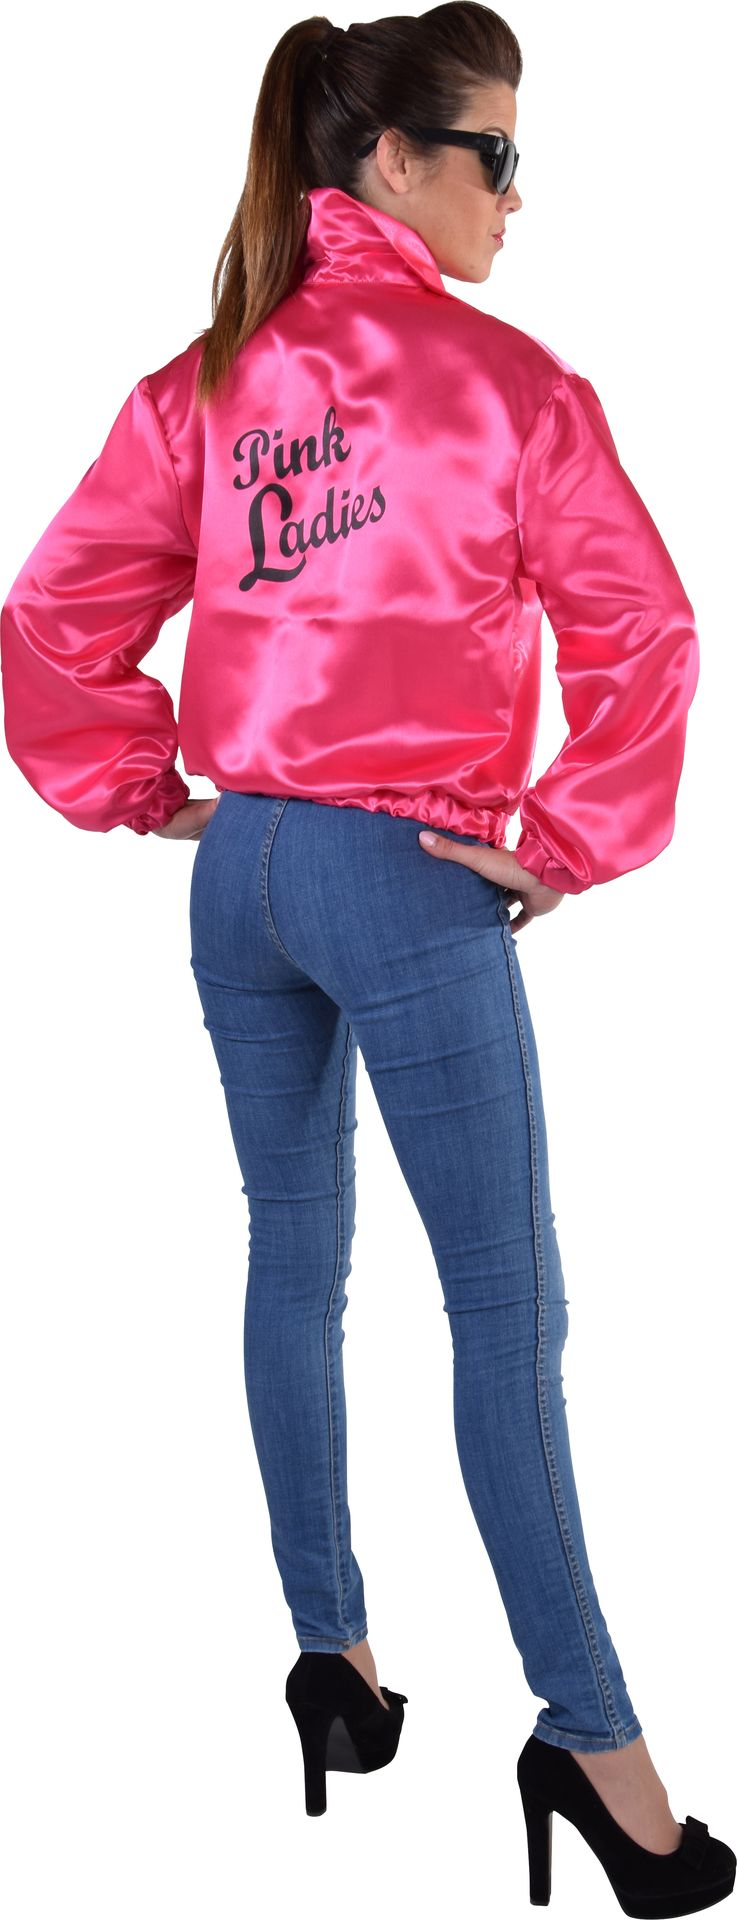 Roze Grease jas dames 50s